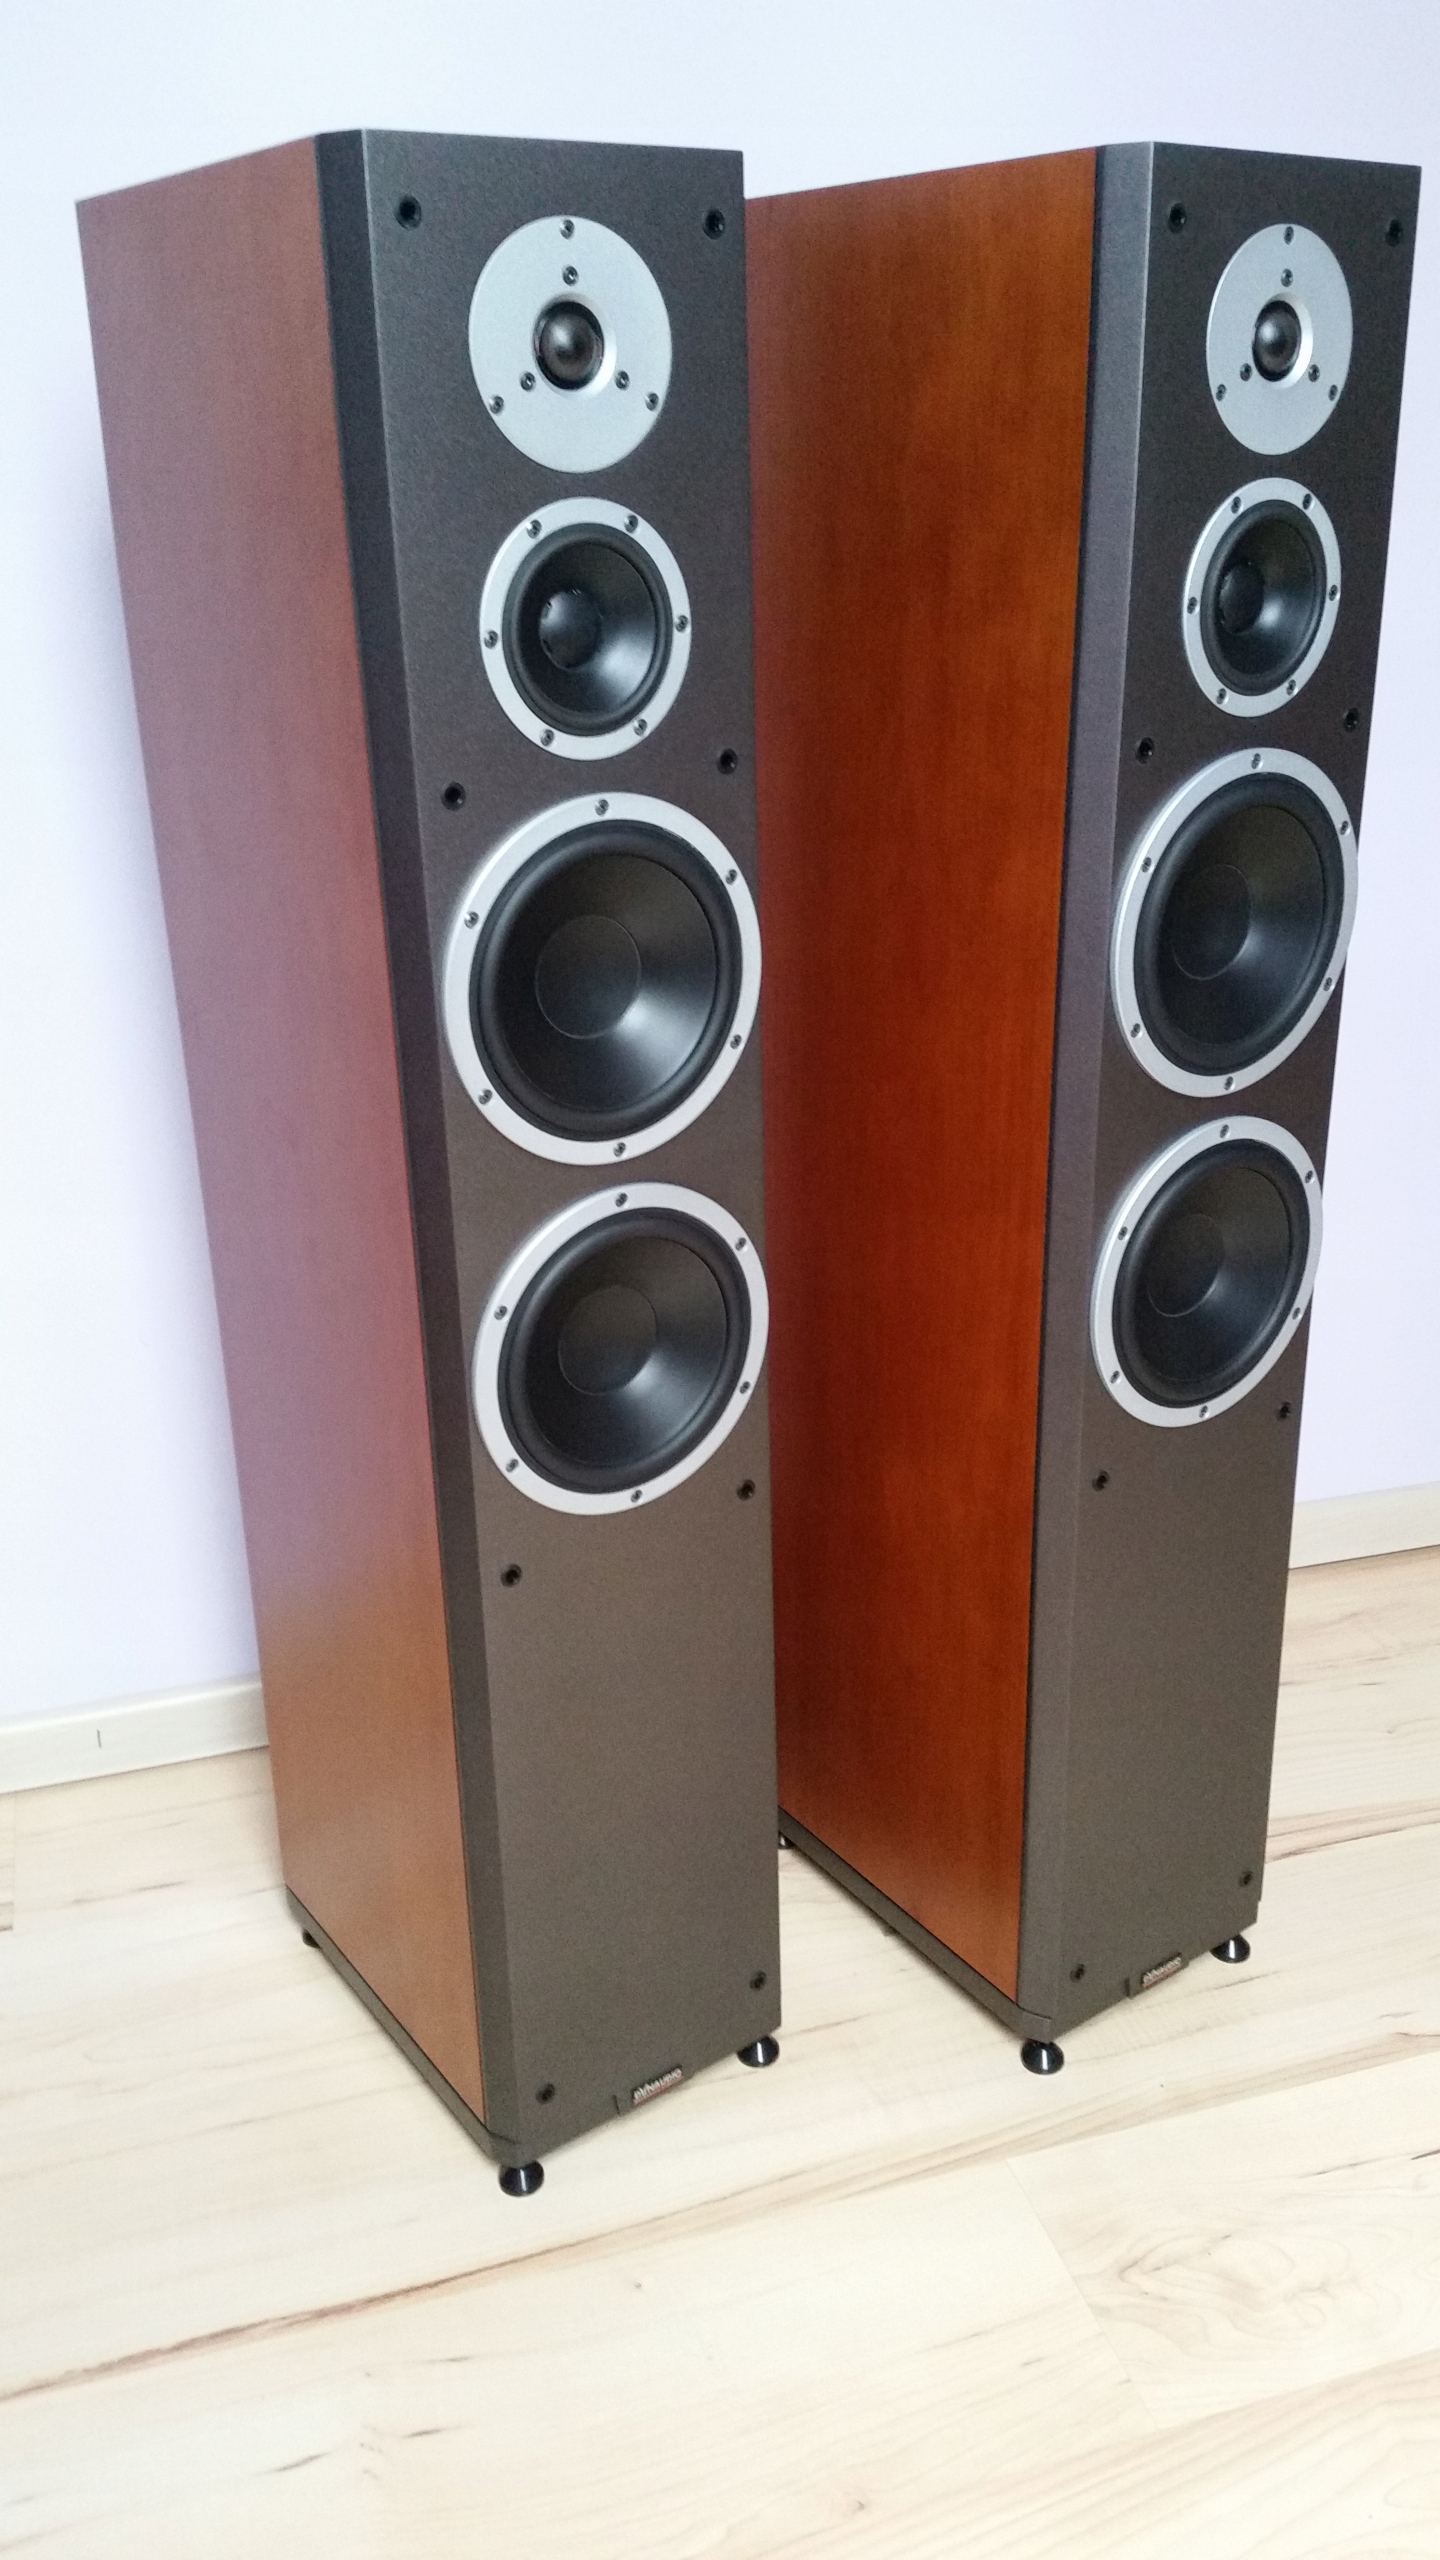 Kolumny Dynaudio Excite X36 Cherry, stan idealny !